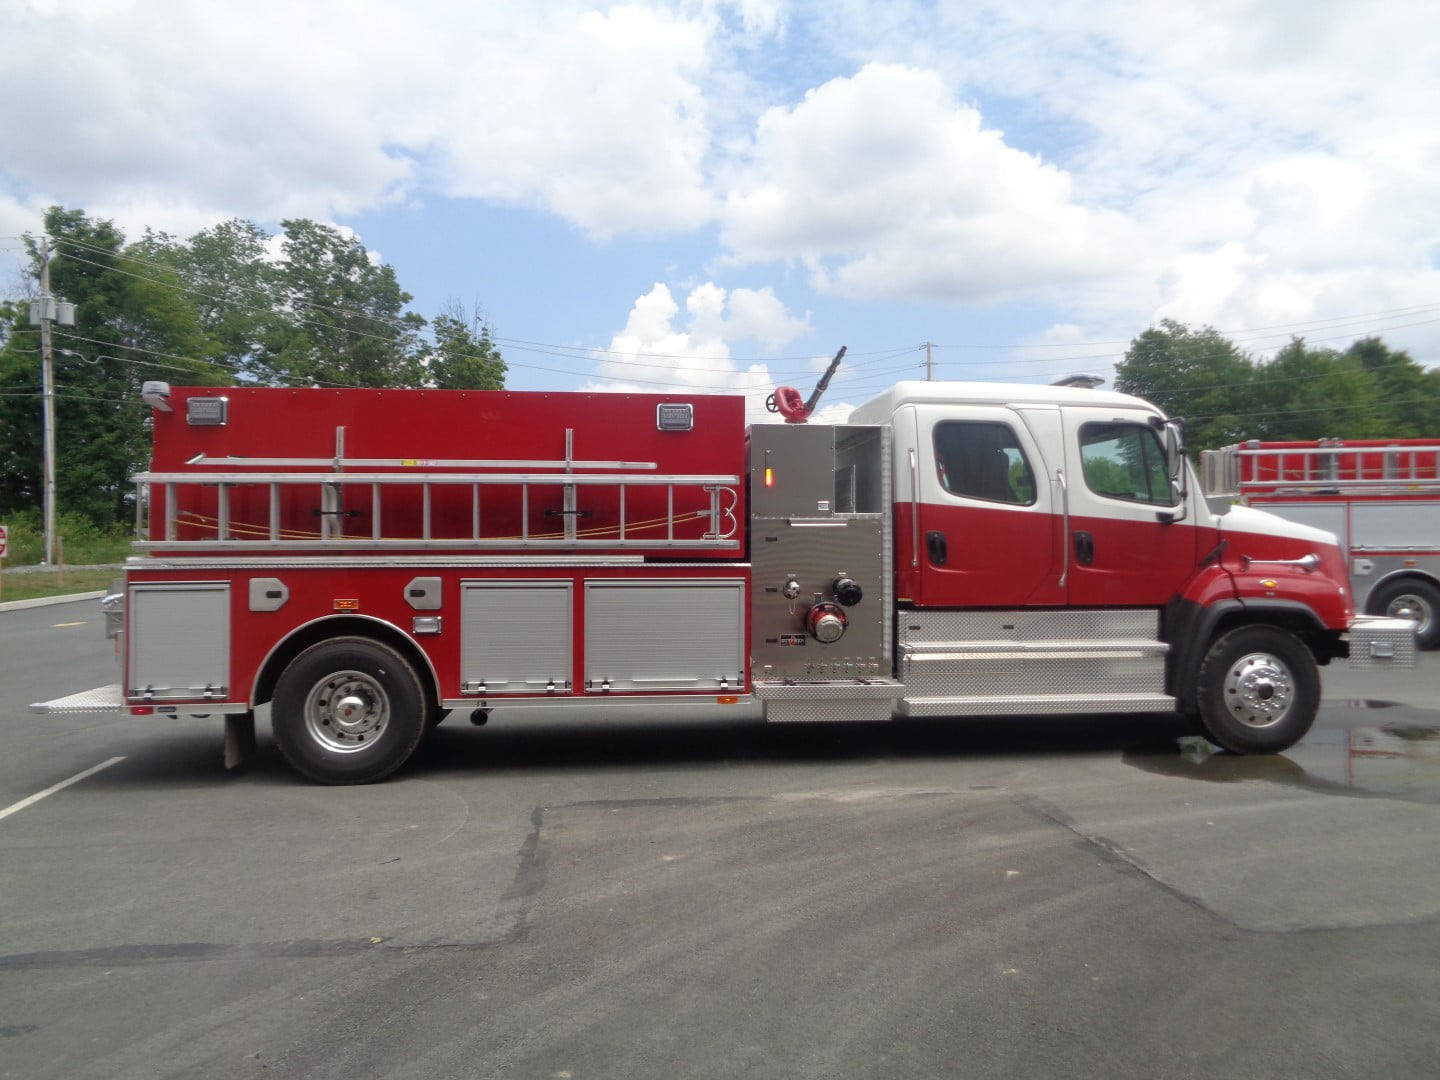 Homer Township Fire Protection, IL